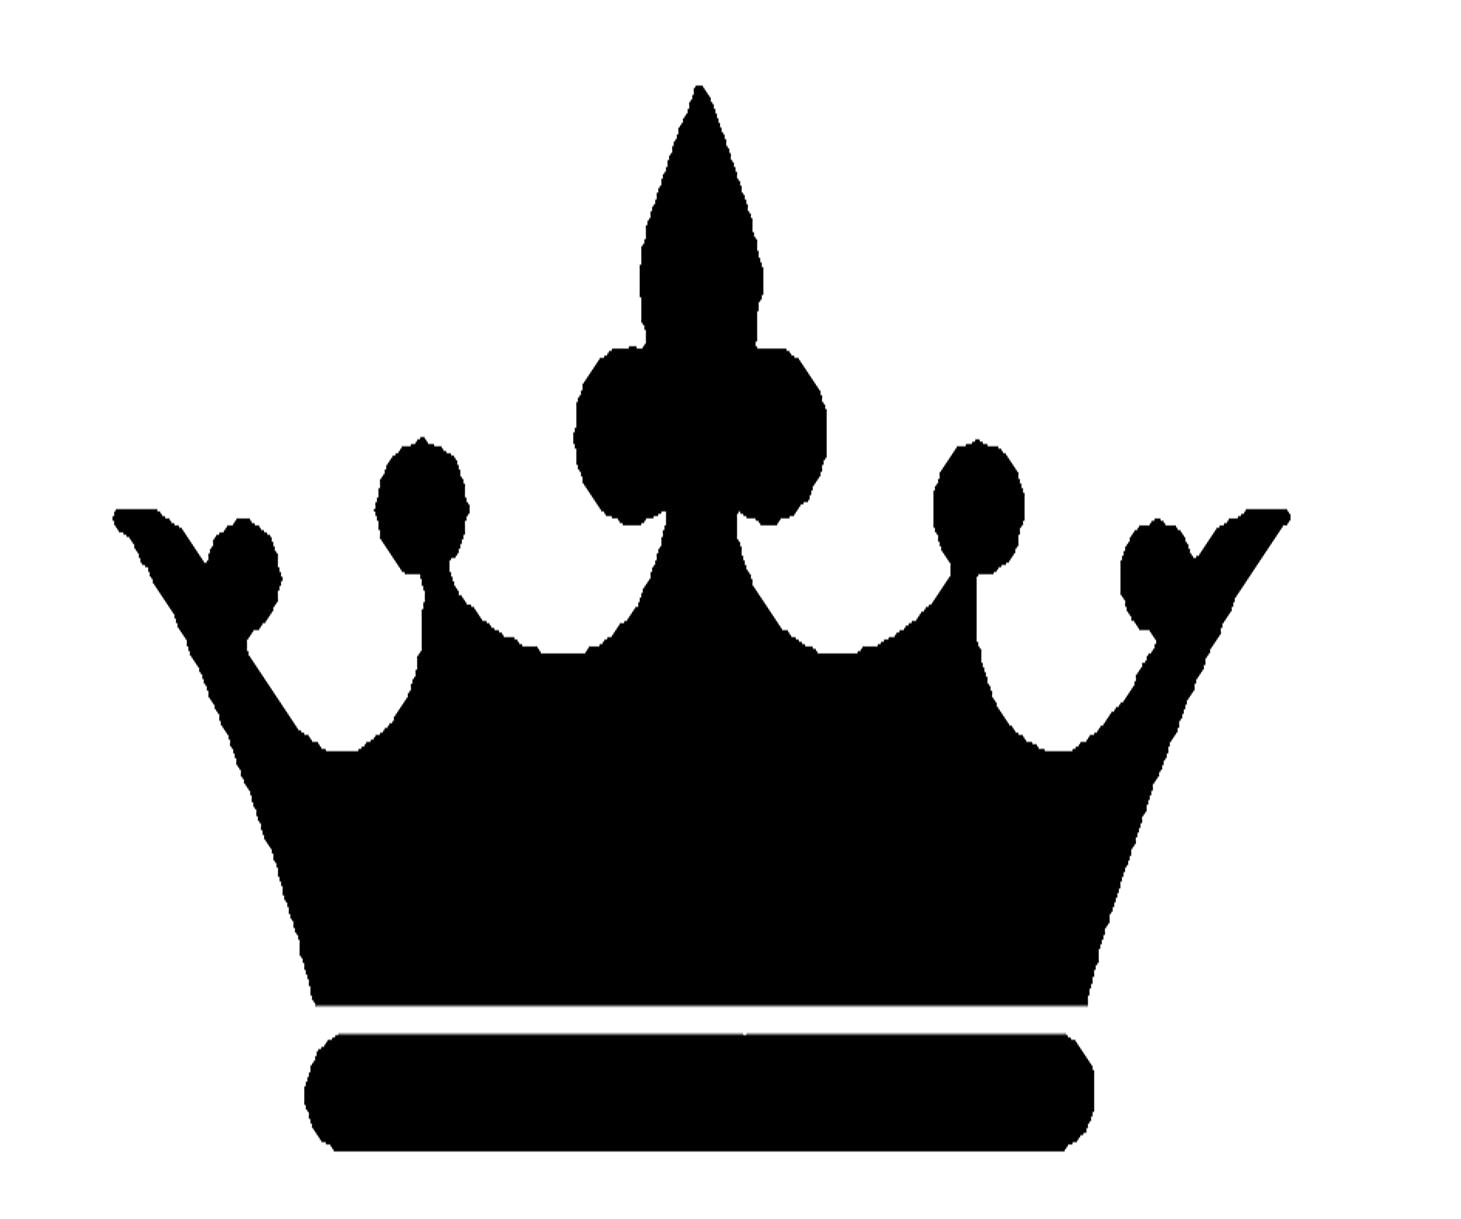 Kings crown clipart 4 » Clipart Station.